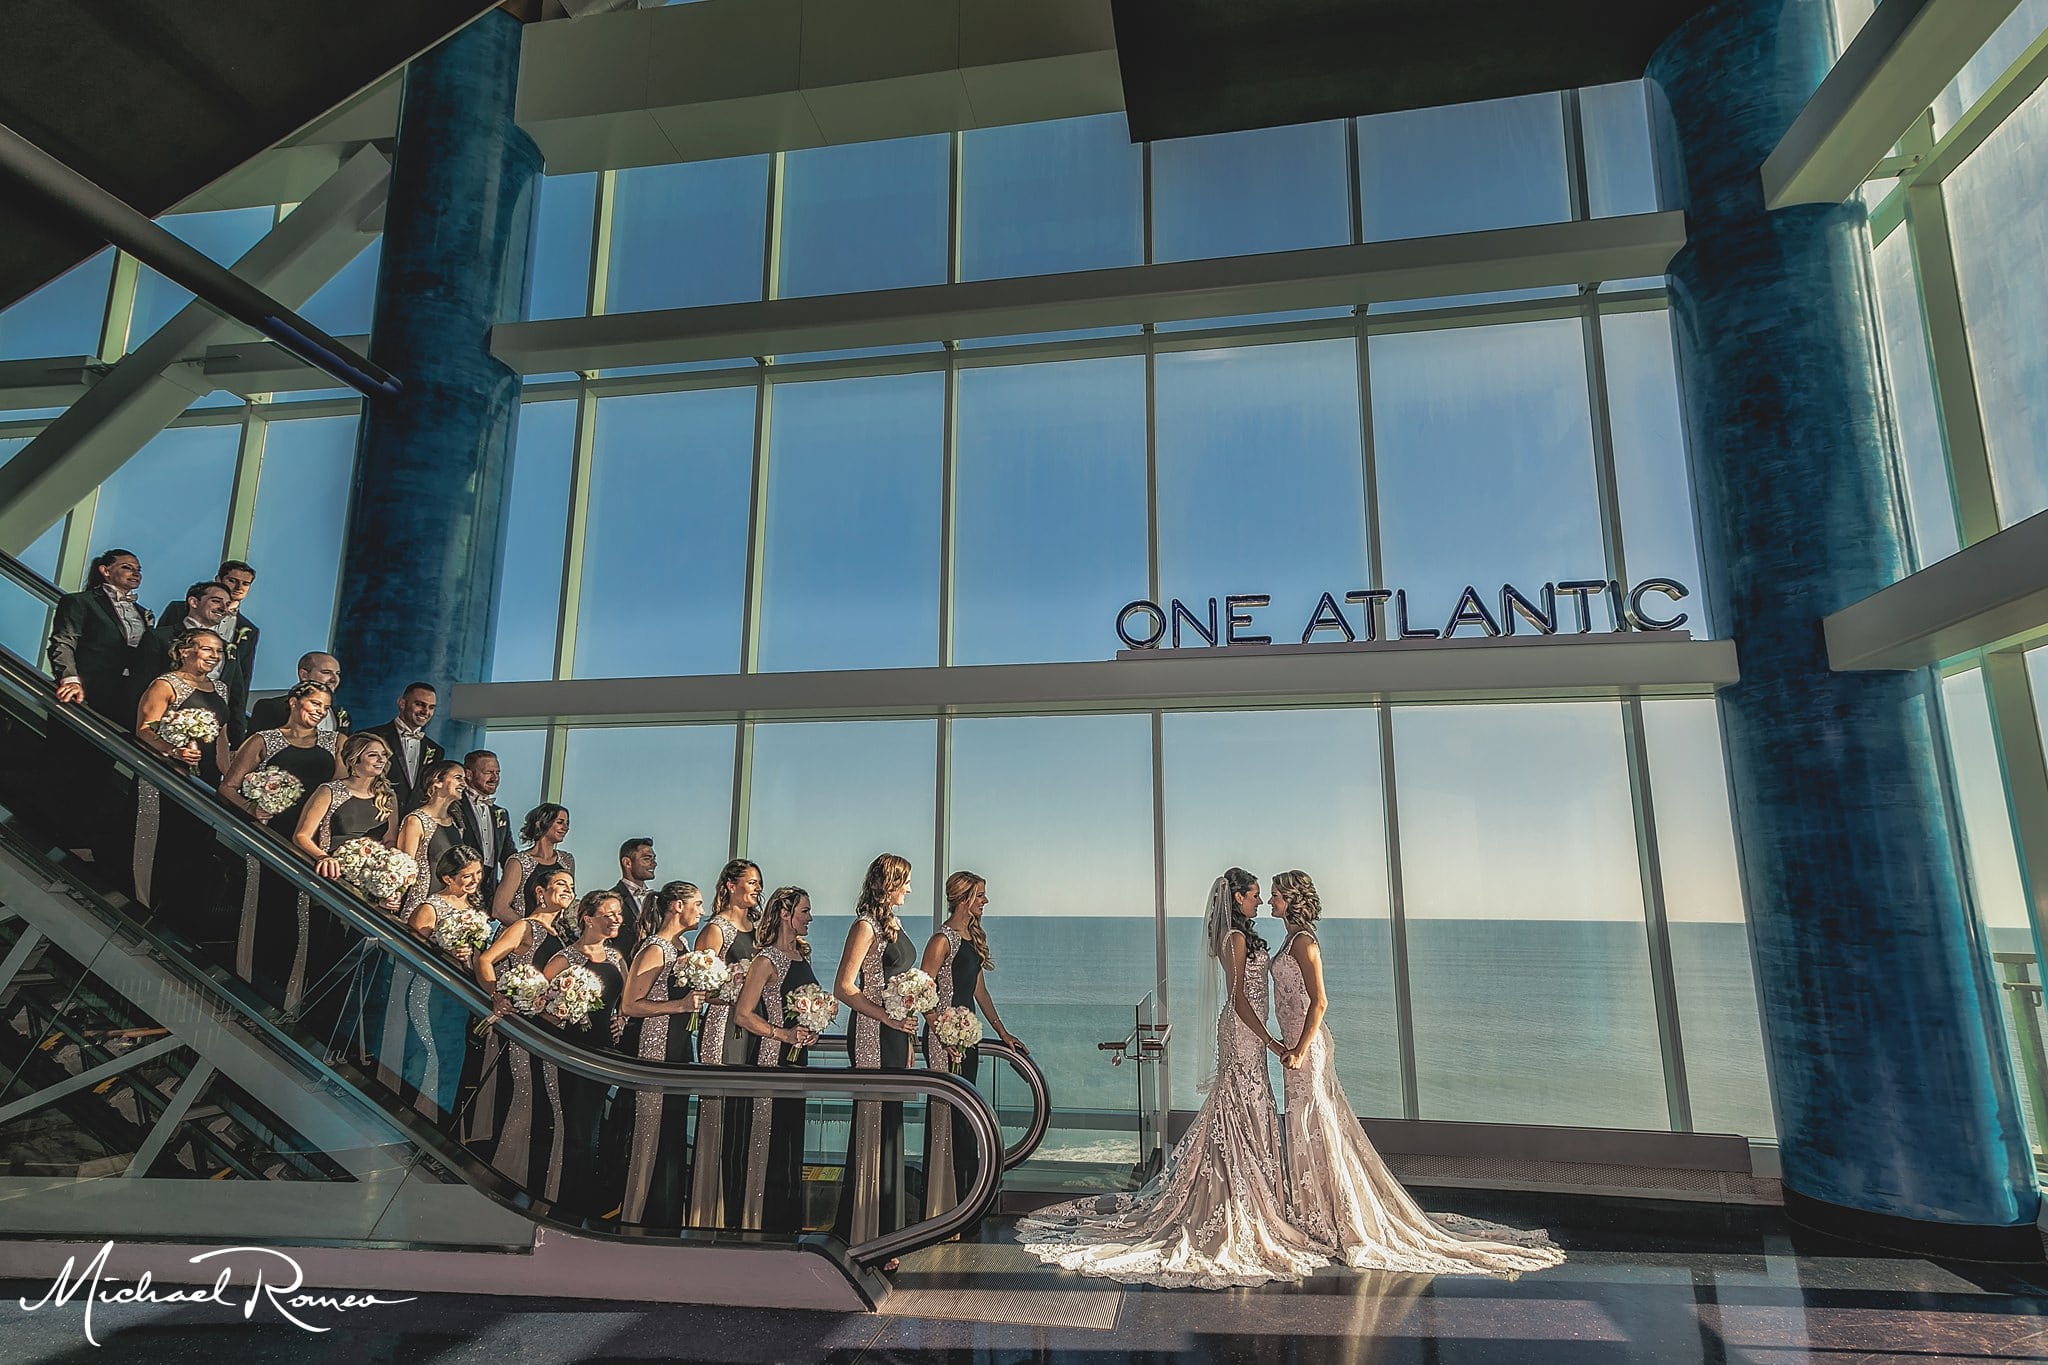 New Jersey Wedding photography cinematography Michael Romeo Creations 1438 - What to Expect When You Plan an Event with One Atlantic Events